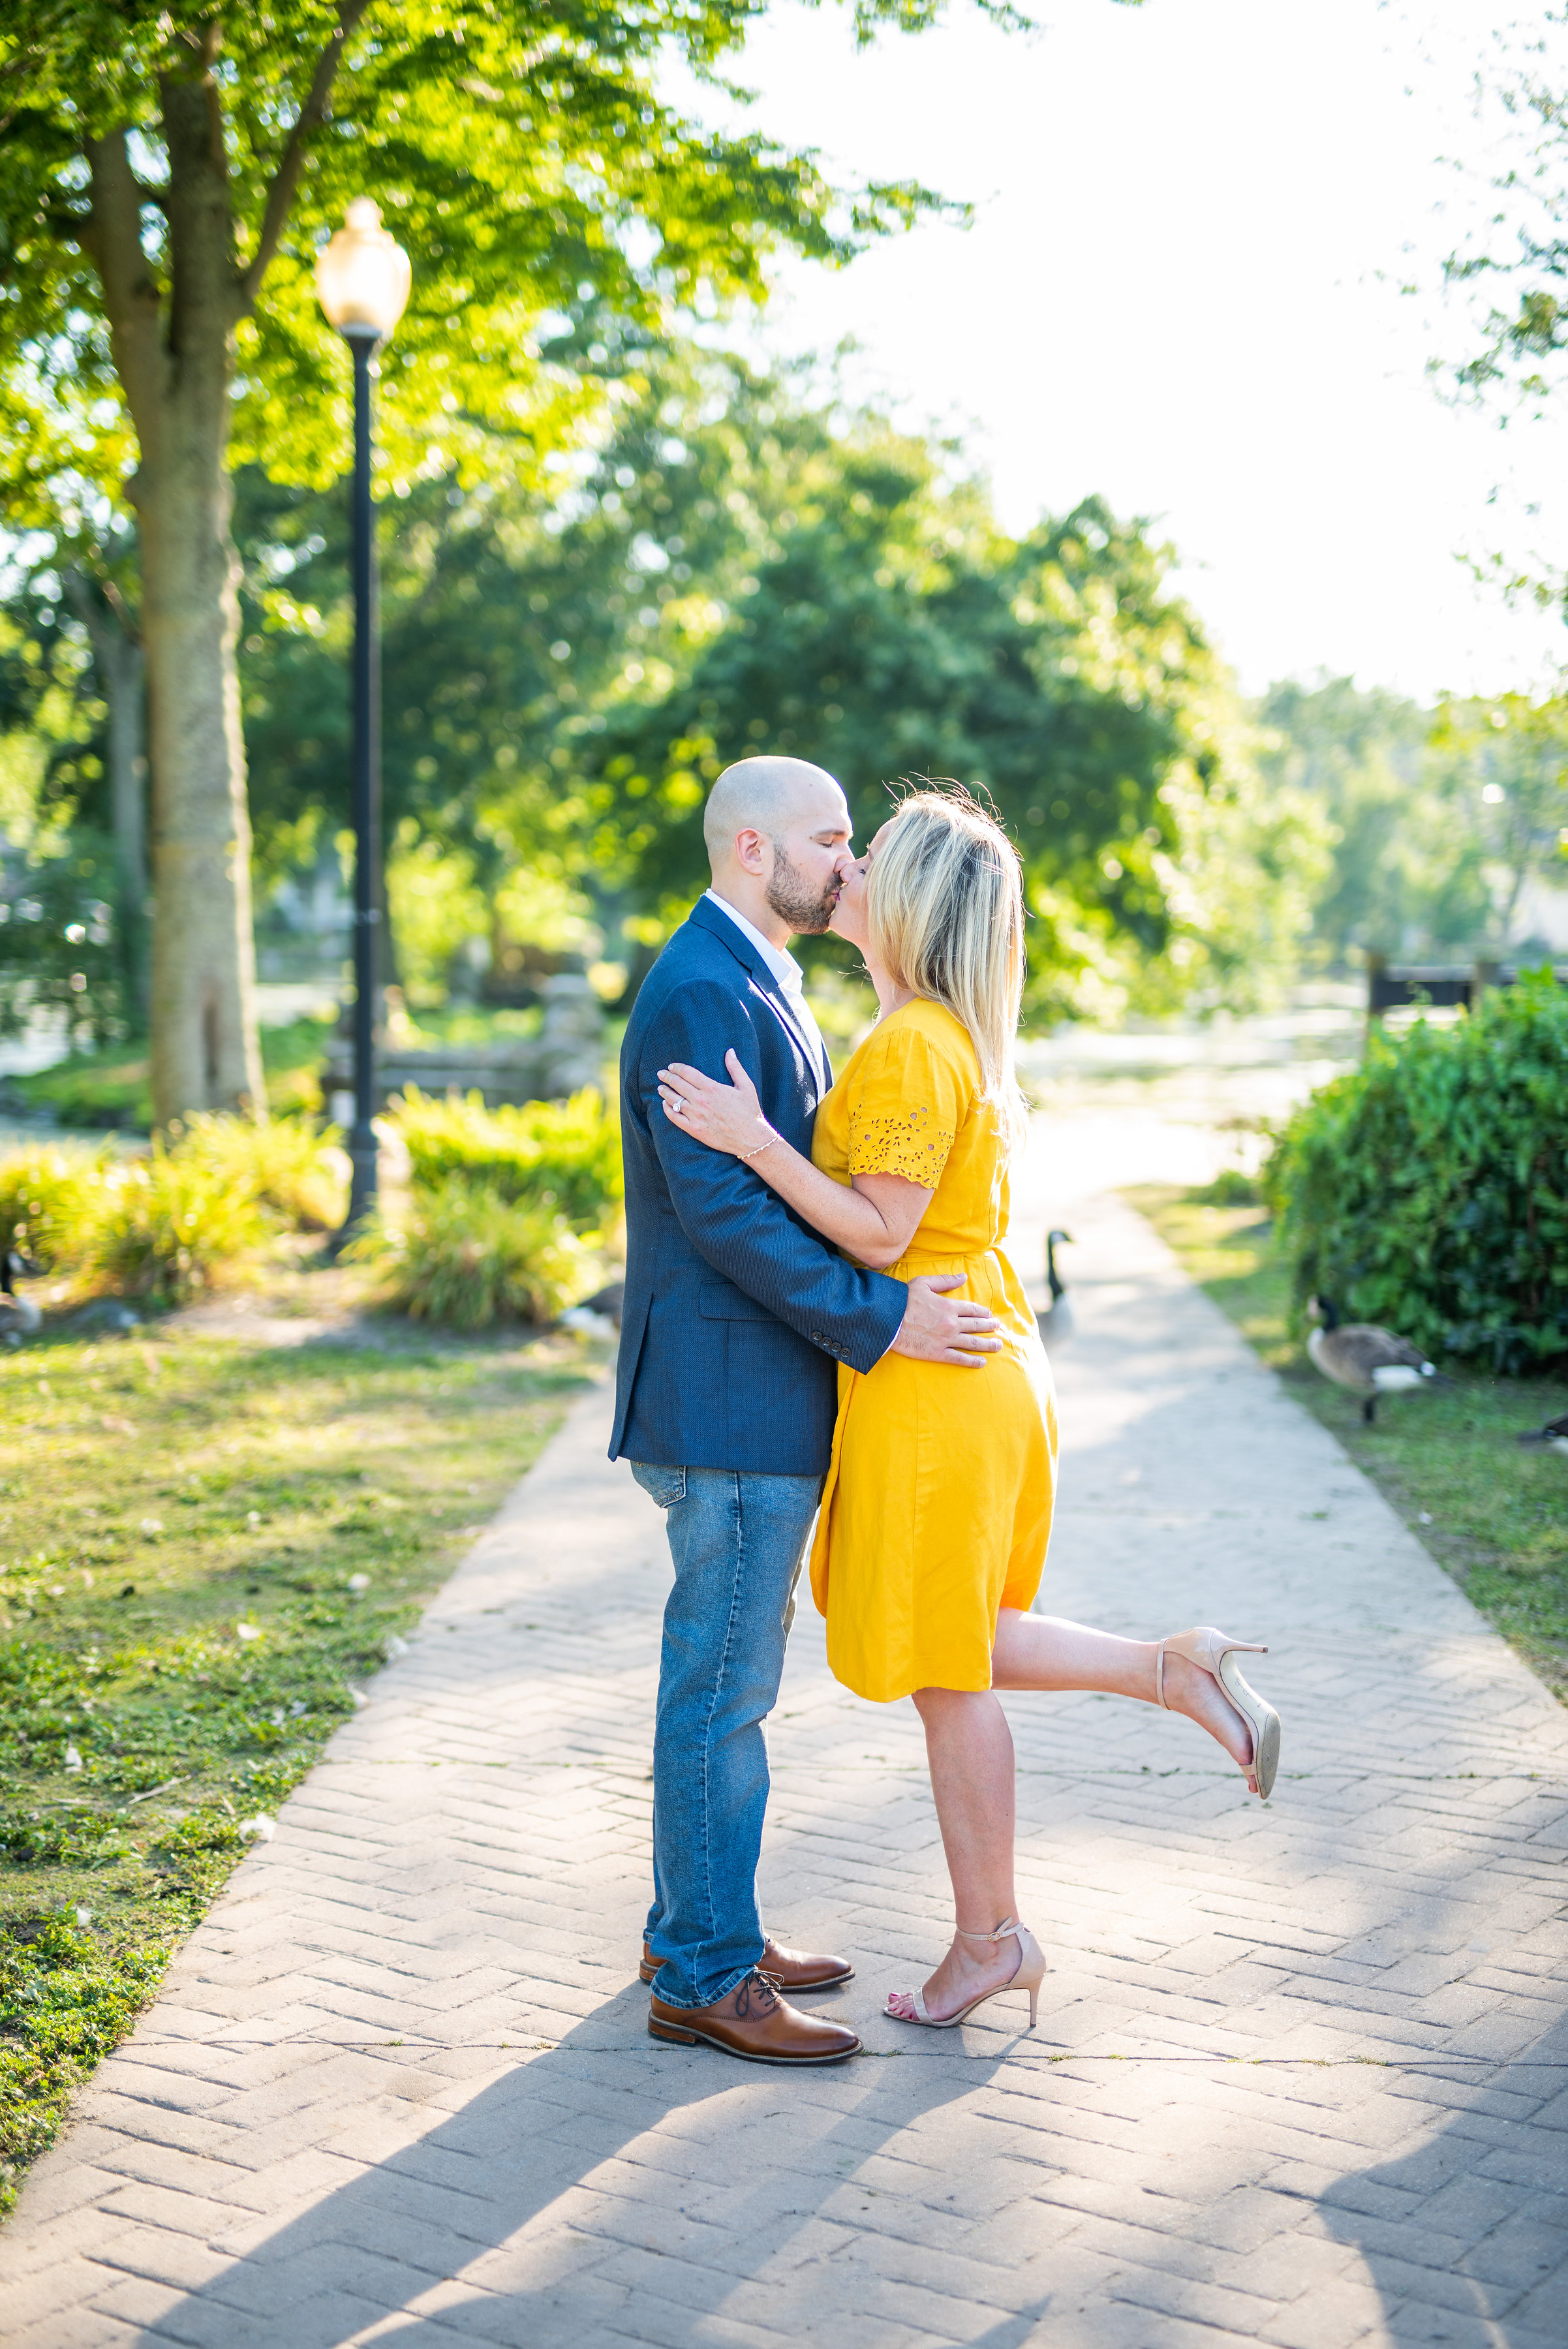 Hecksher Park Engagement Shoot | Long Island Wedding Photographer | Long Island Wedding Photographers6